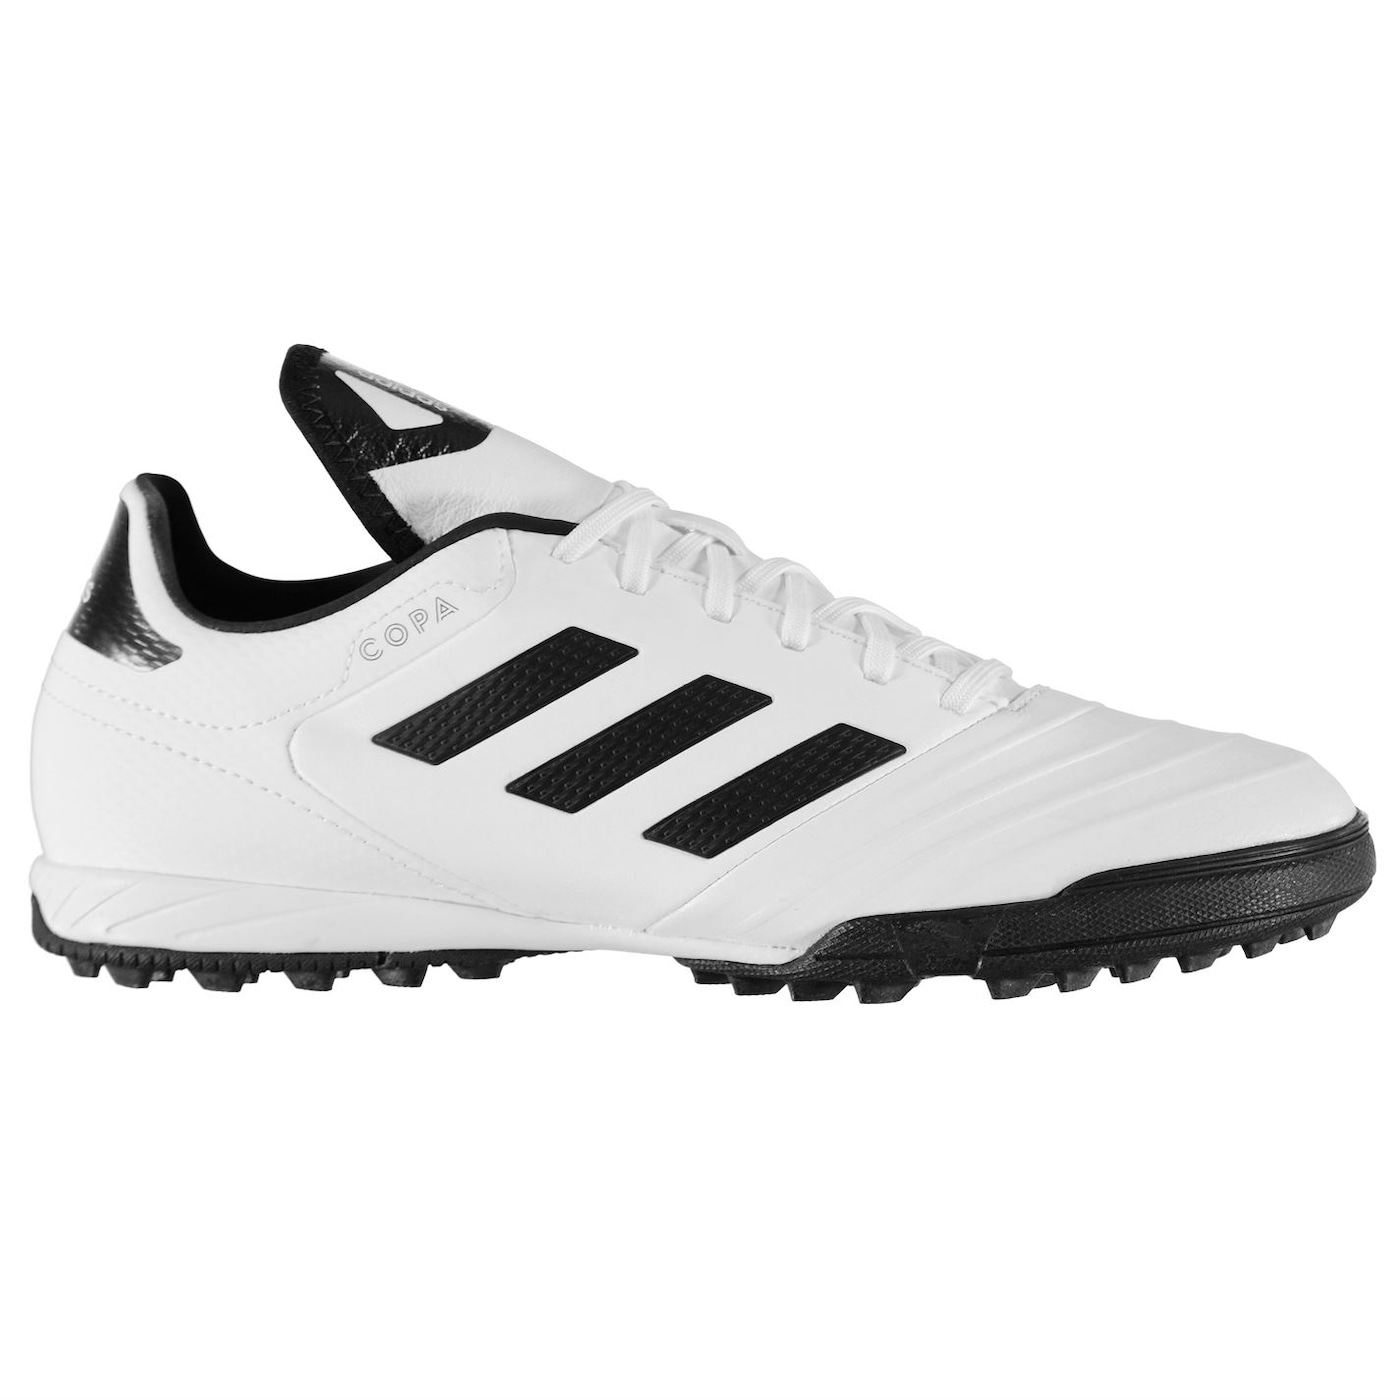 adidas copa trainers for men